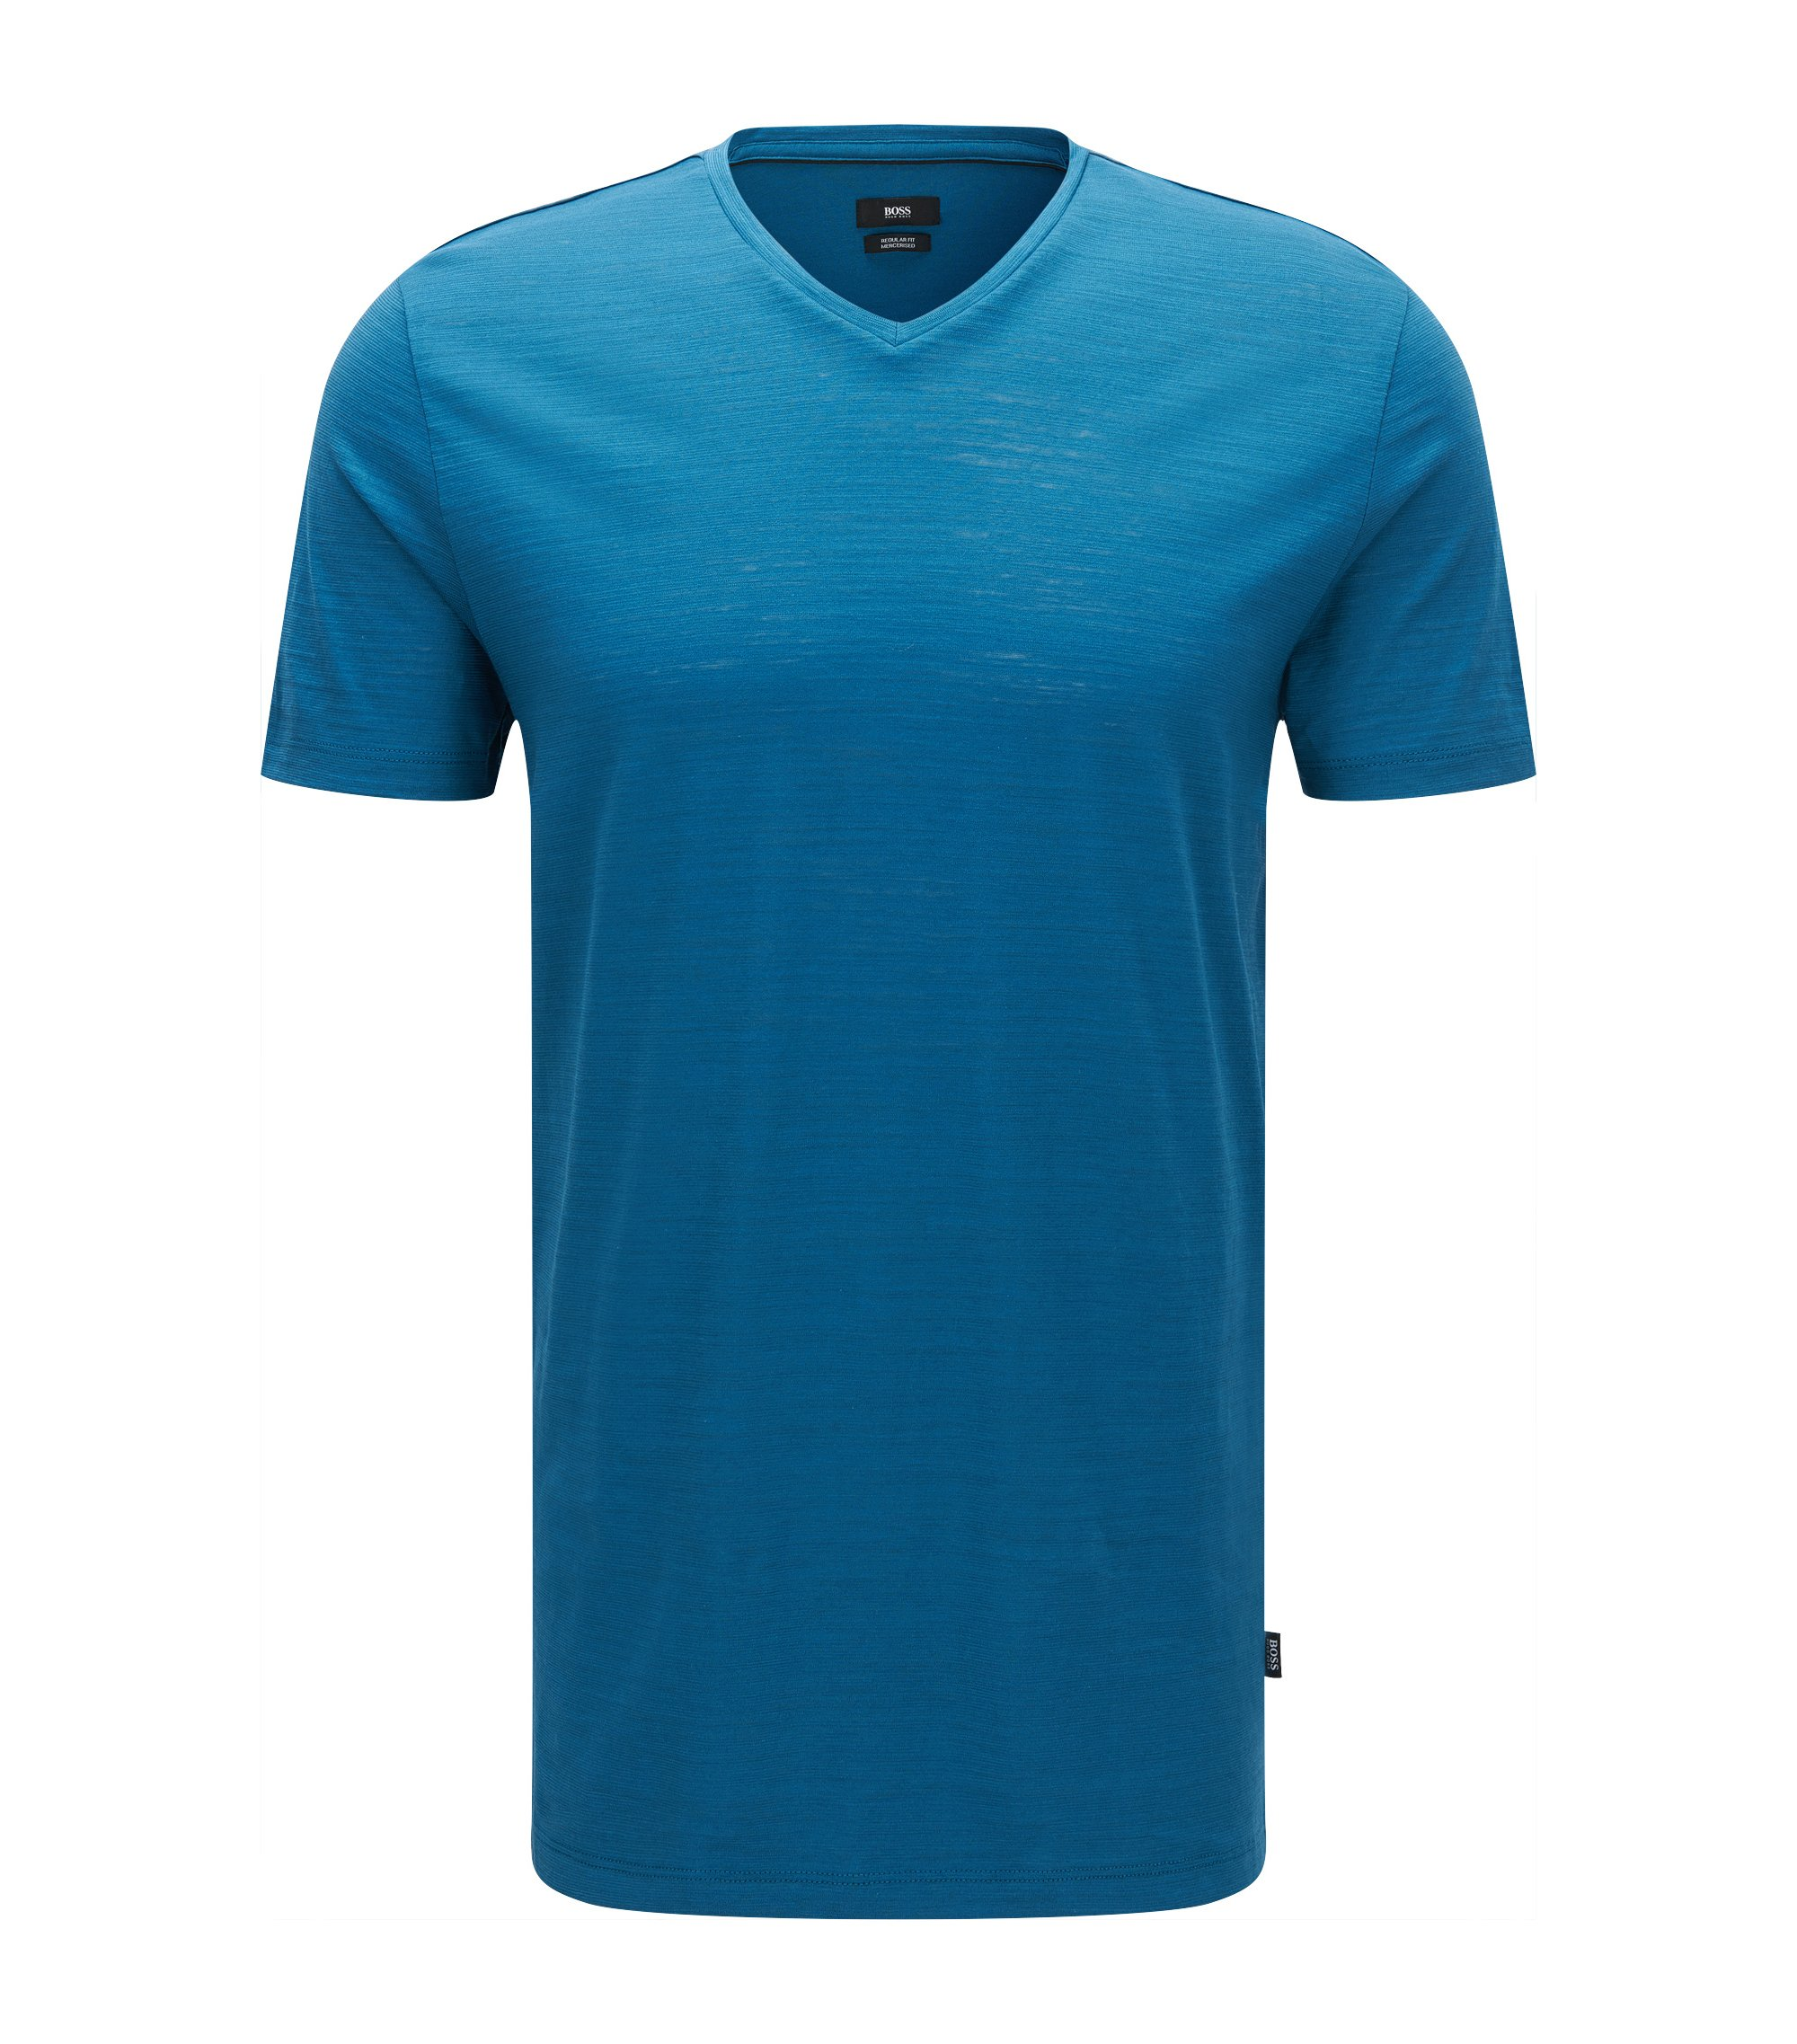 Regular-fit T-shirt in mercerised cotton, Turquoise